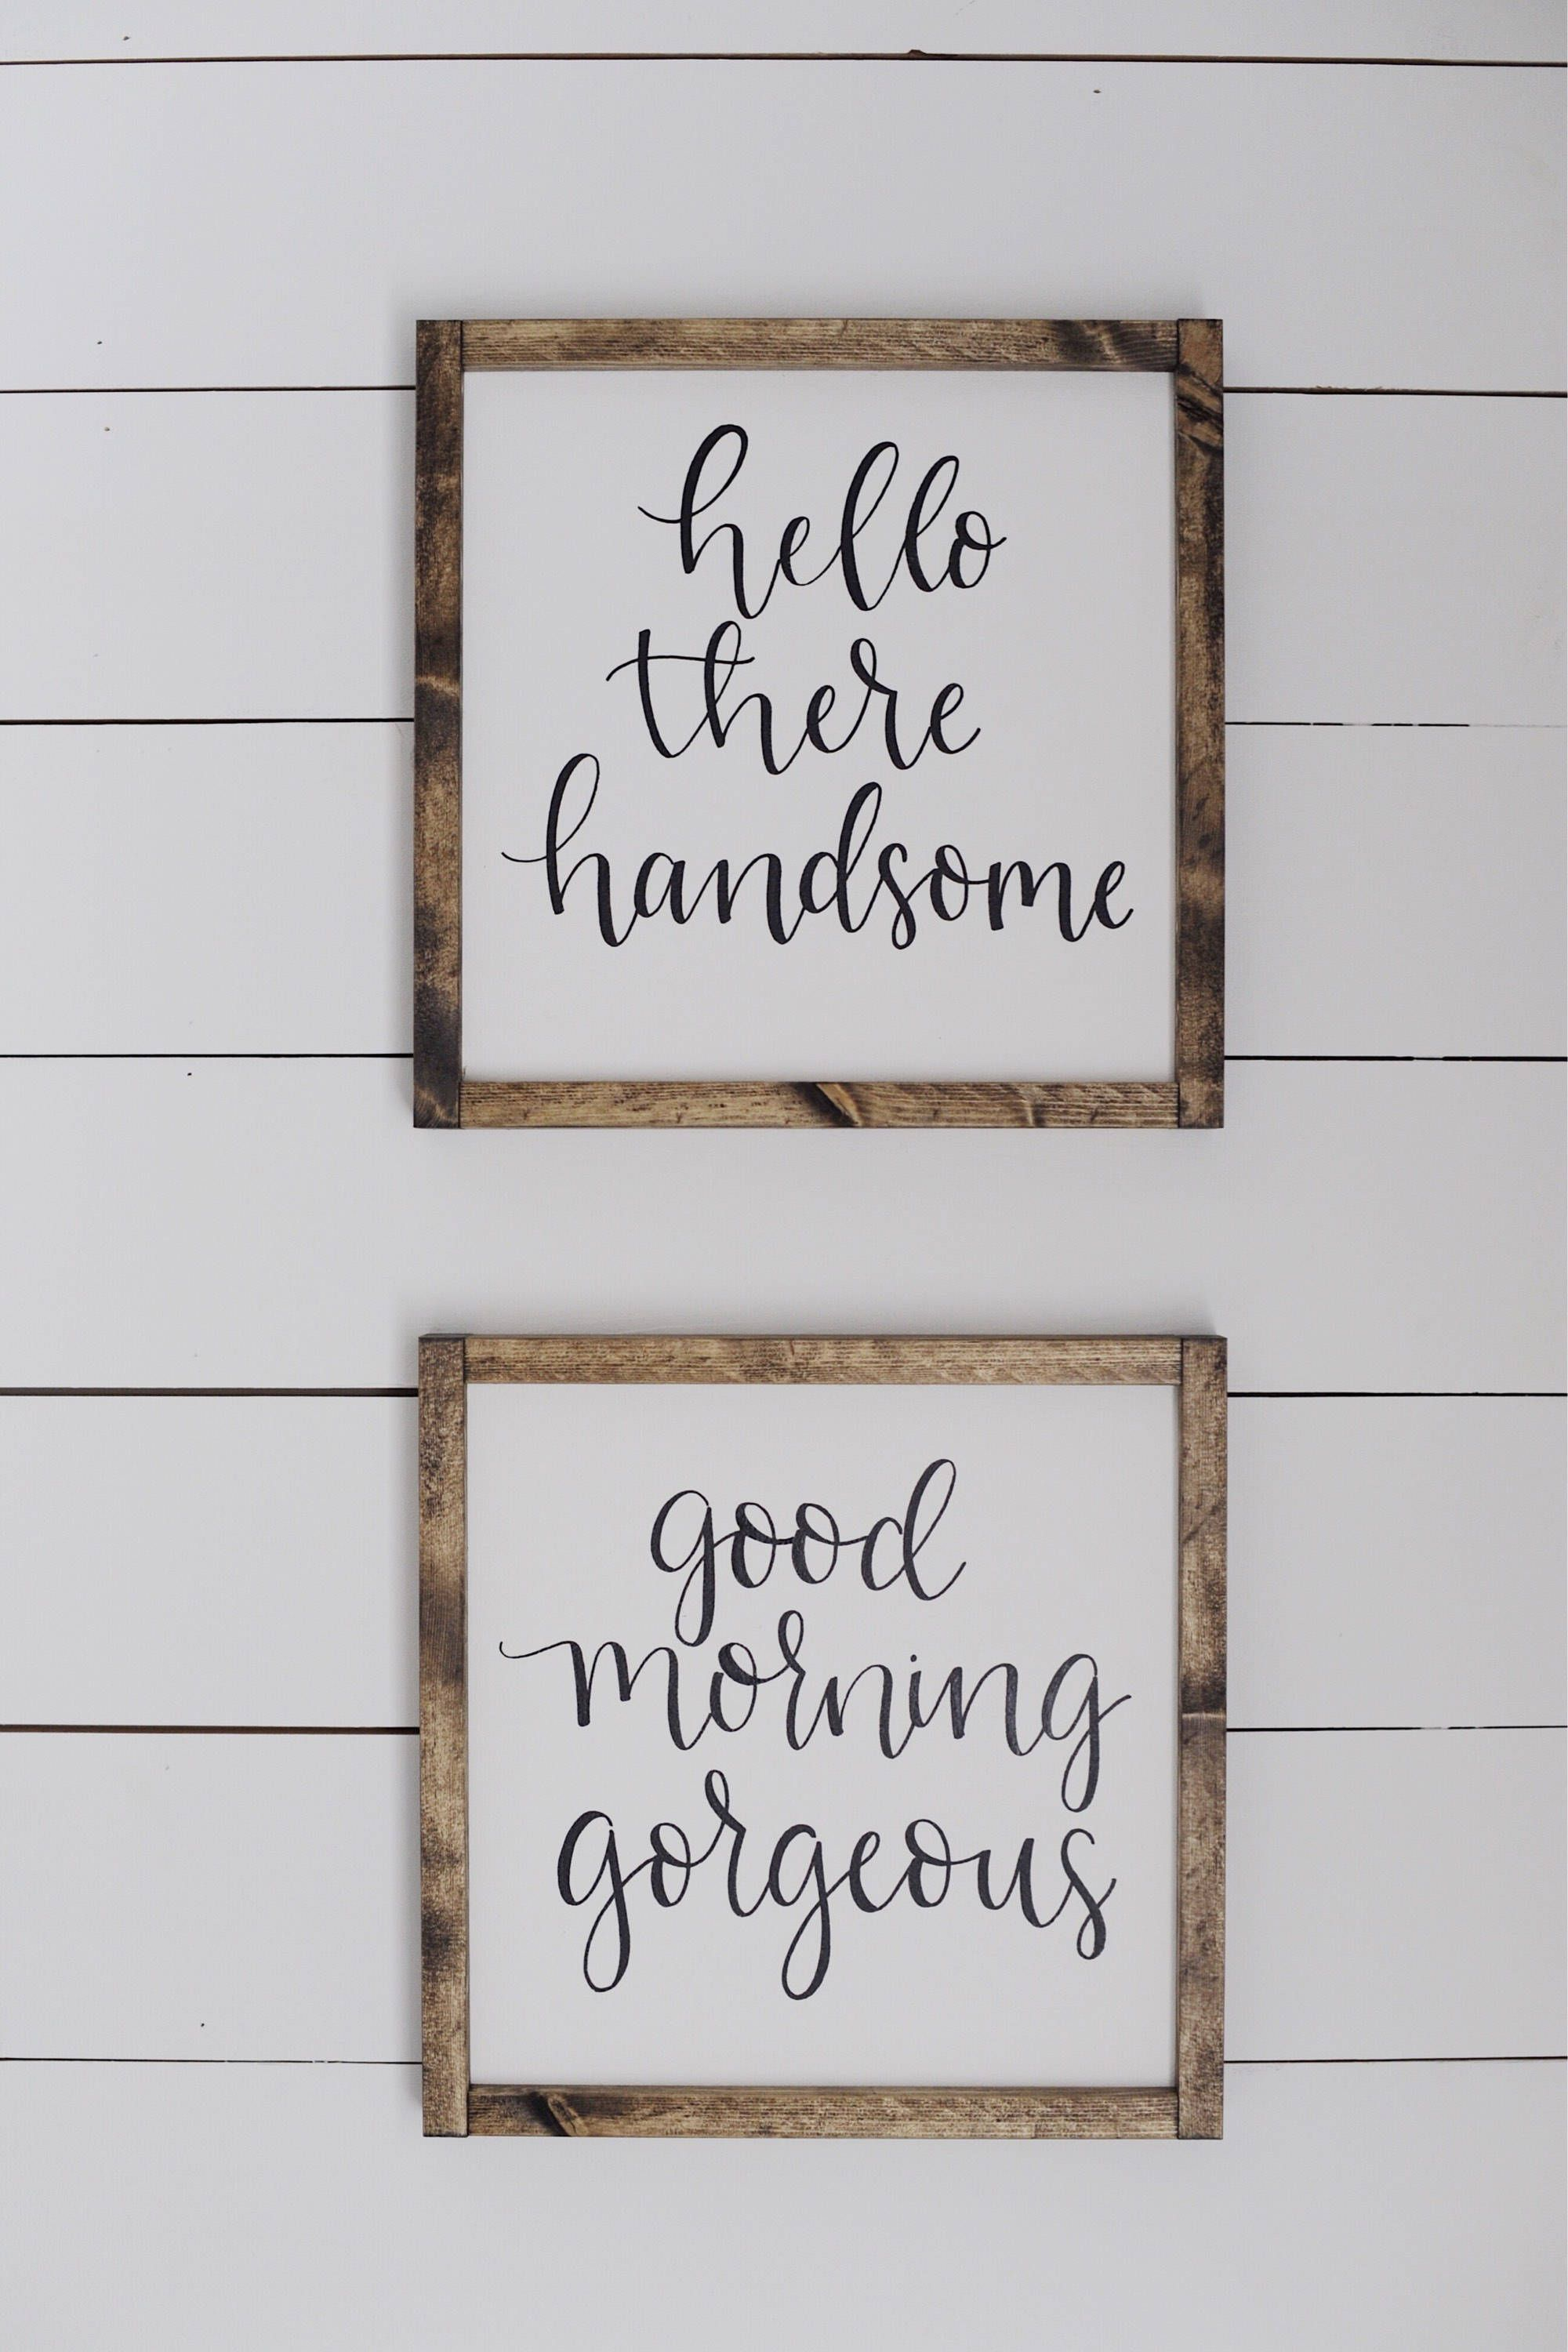 hello there handsome good morning gorgeous wood framed sign set in rh pinterest com